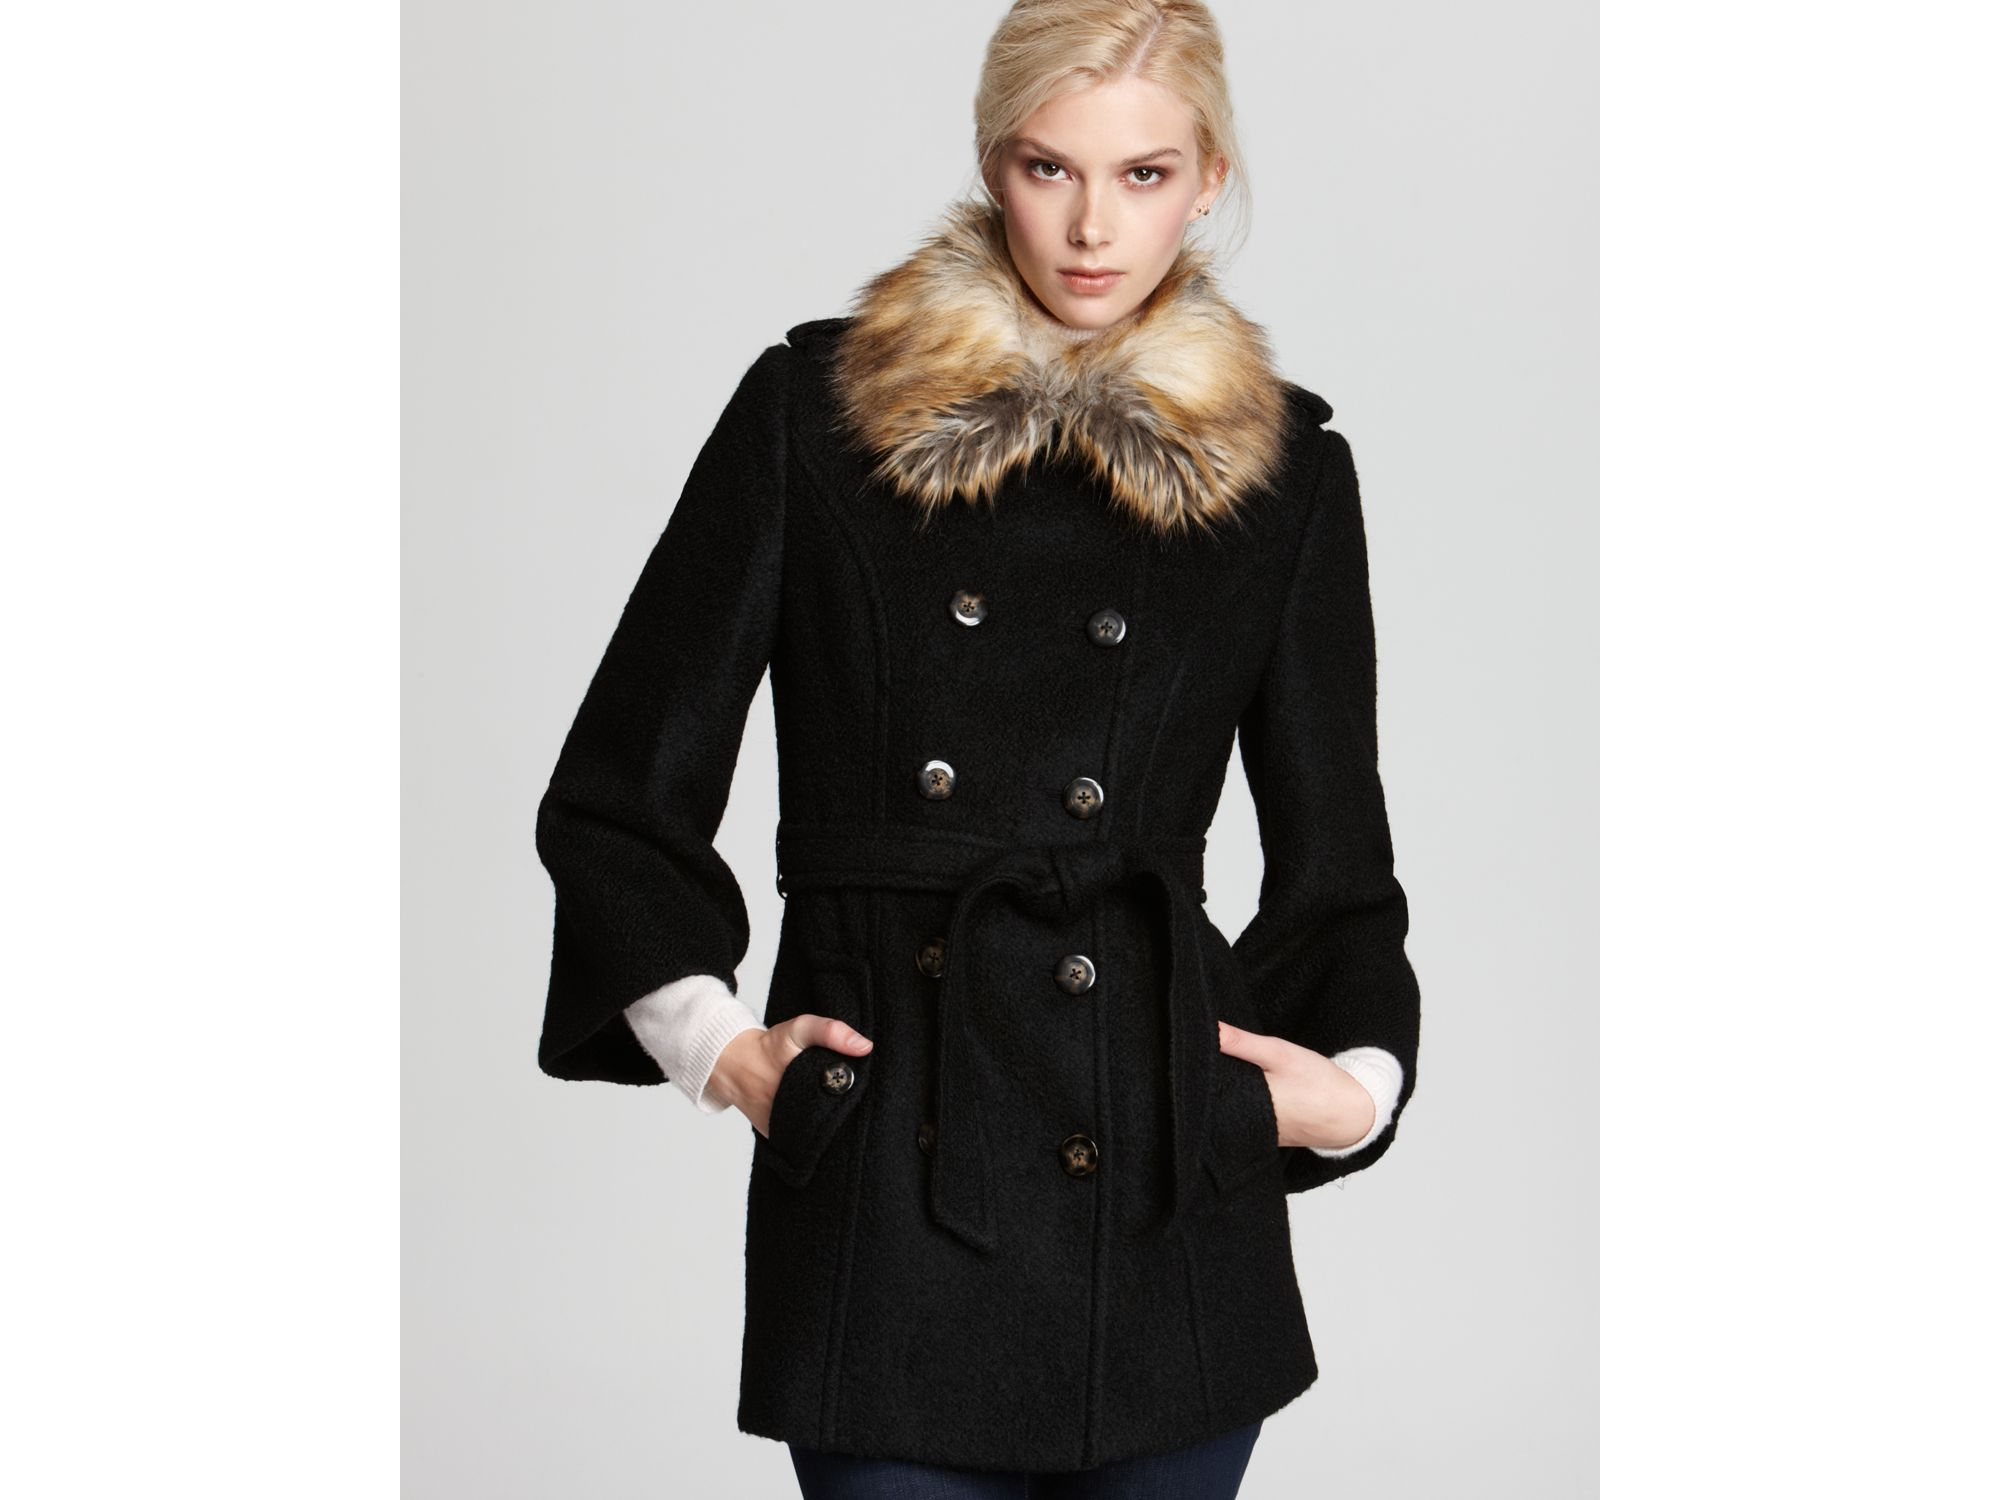 Laundry by shelli segal Belted Double Breasted Wool Coat with Faux ...